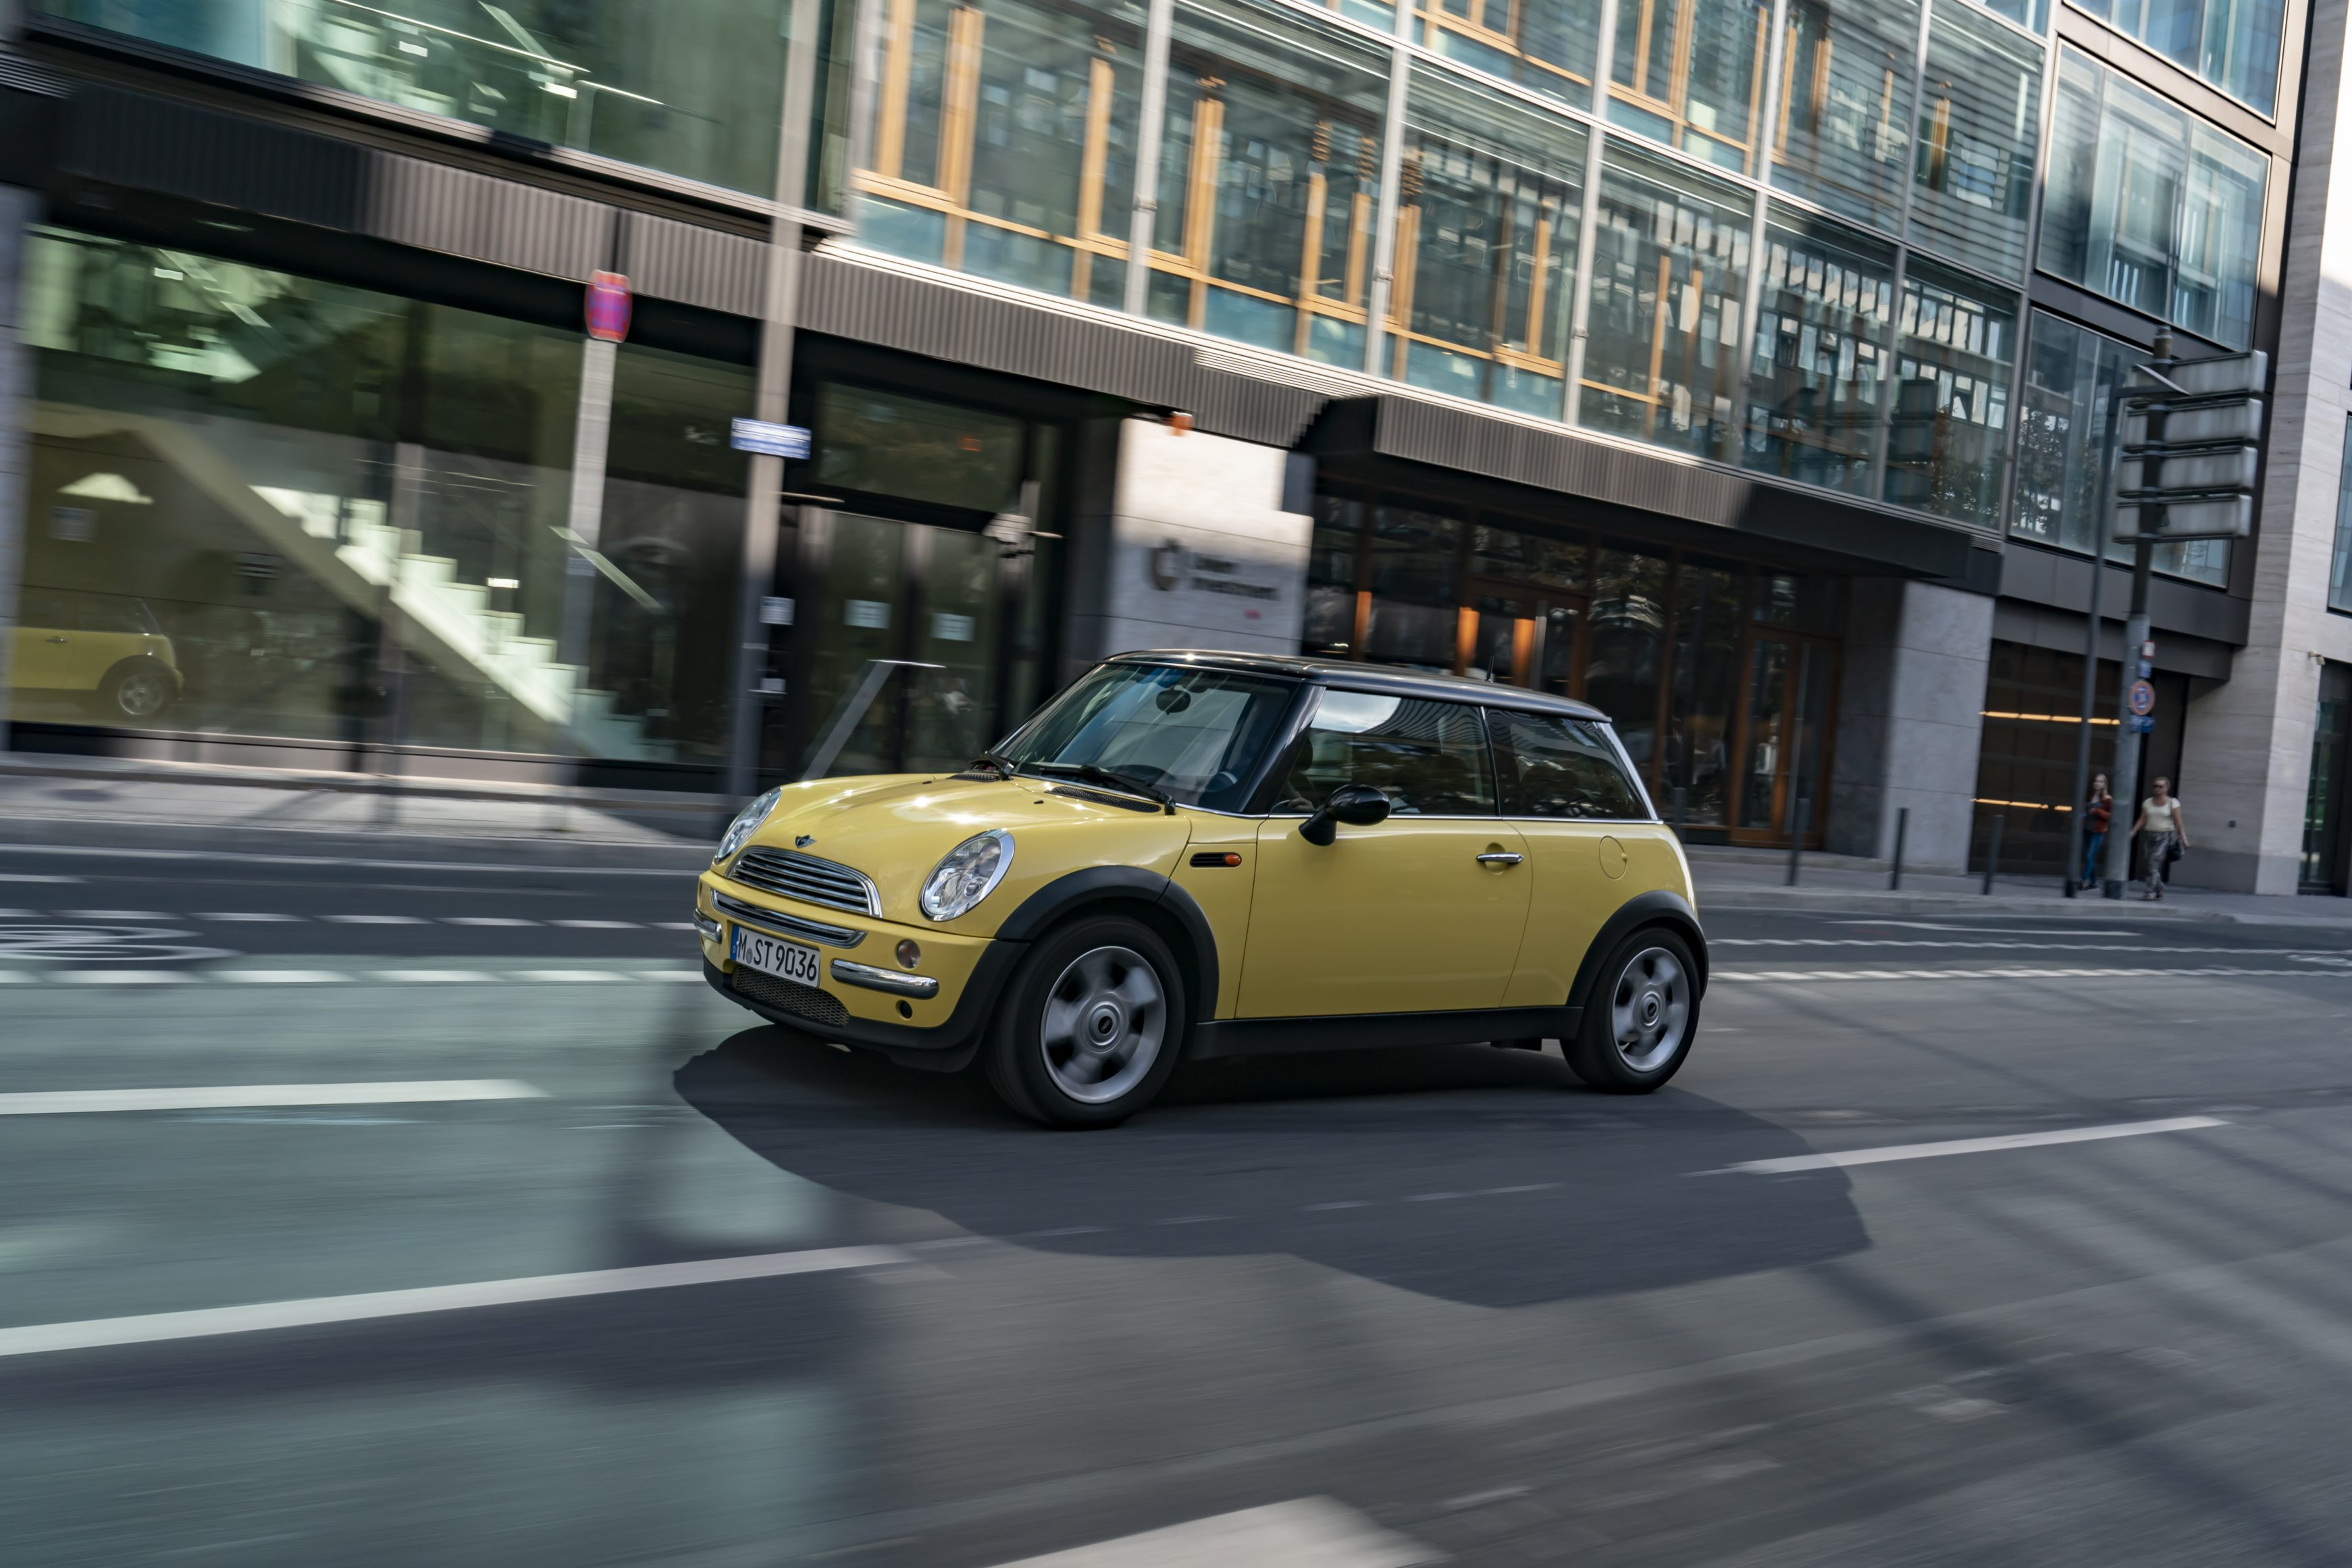 Best-selling cars in the UK - Mini Hatch